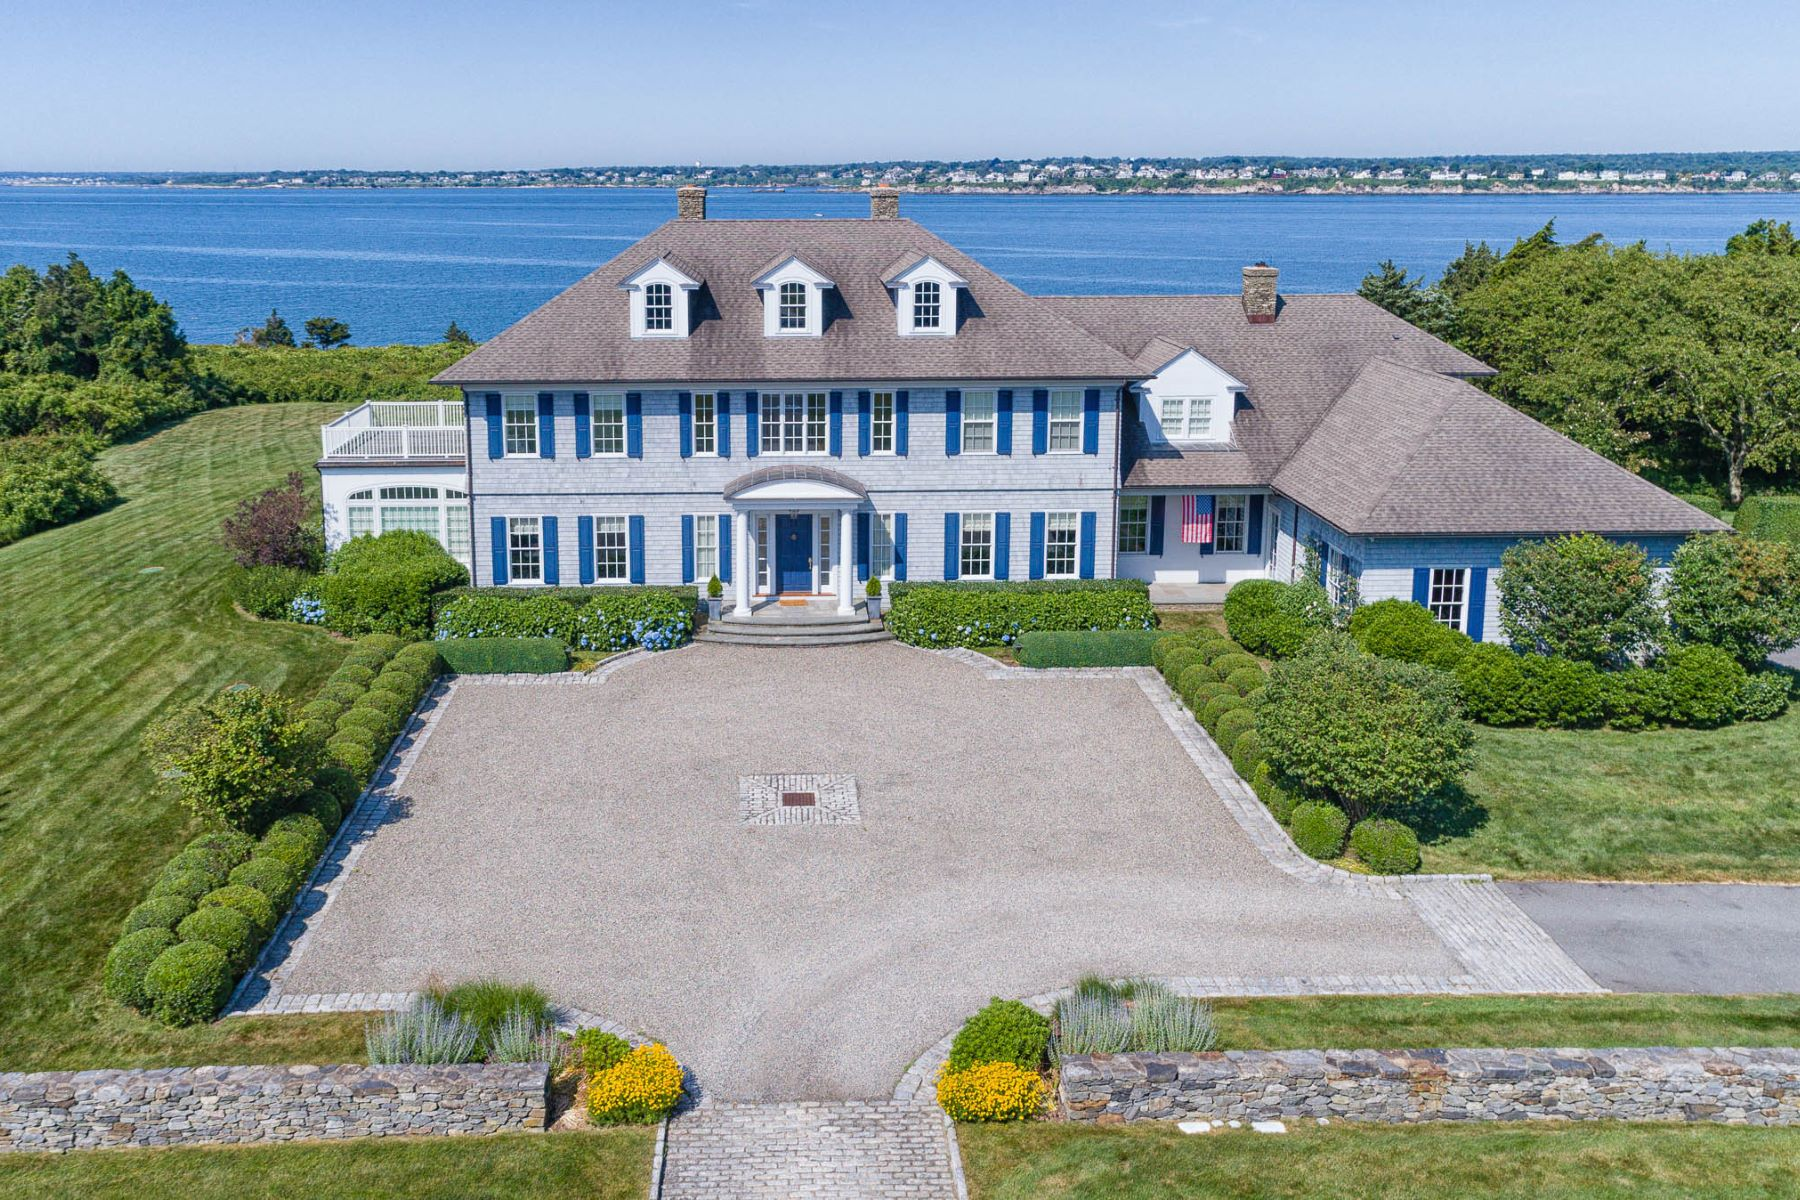 Single Family Homes for Sale at 260 Beavertail Road, Jamestown, RI 260 Beavertail Road Jamestown, Rhode Island 02835 United States